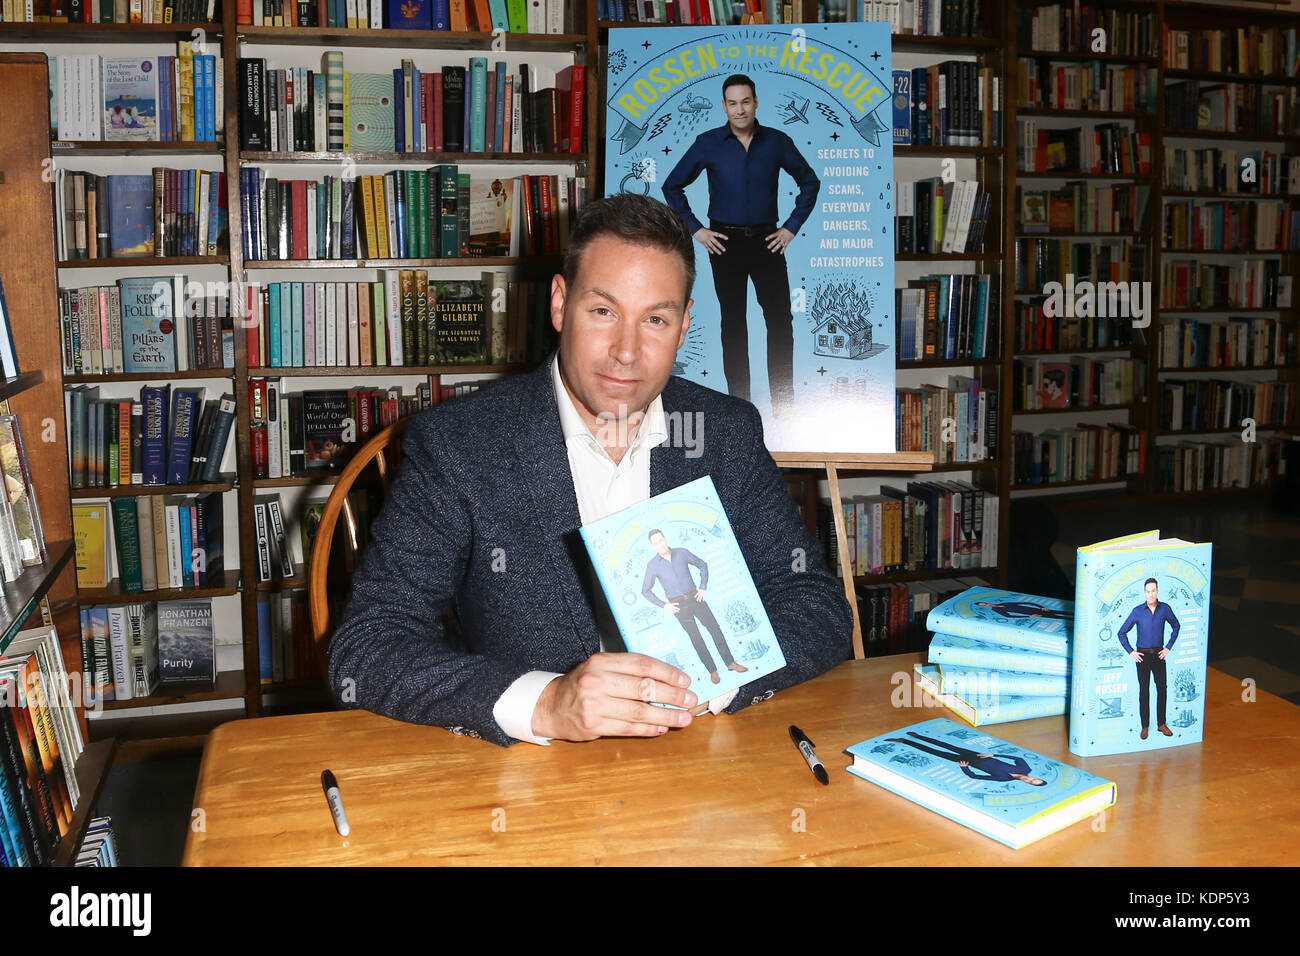 HUNTINGTON, NY-OCT 10: Jeff Rossen signs copies of his book, 'Rossen to the Rescue: Secrets to Avoiding Scams, - Stock Image